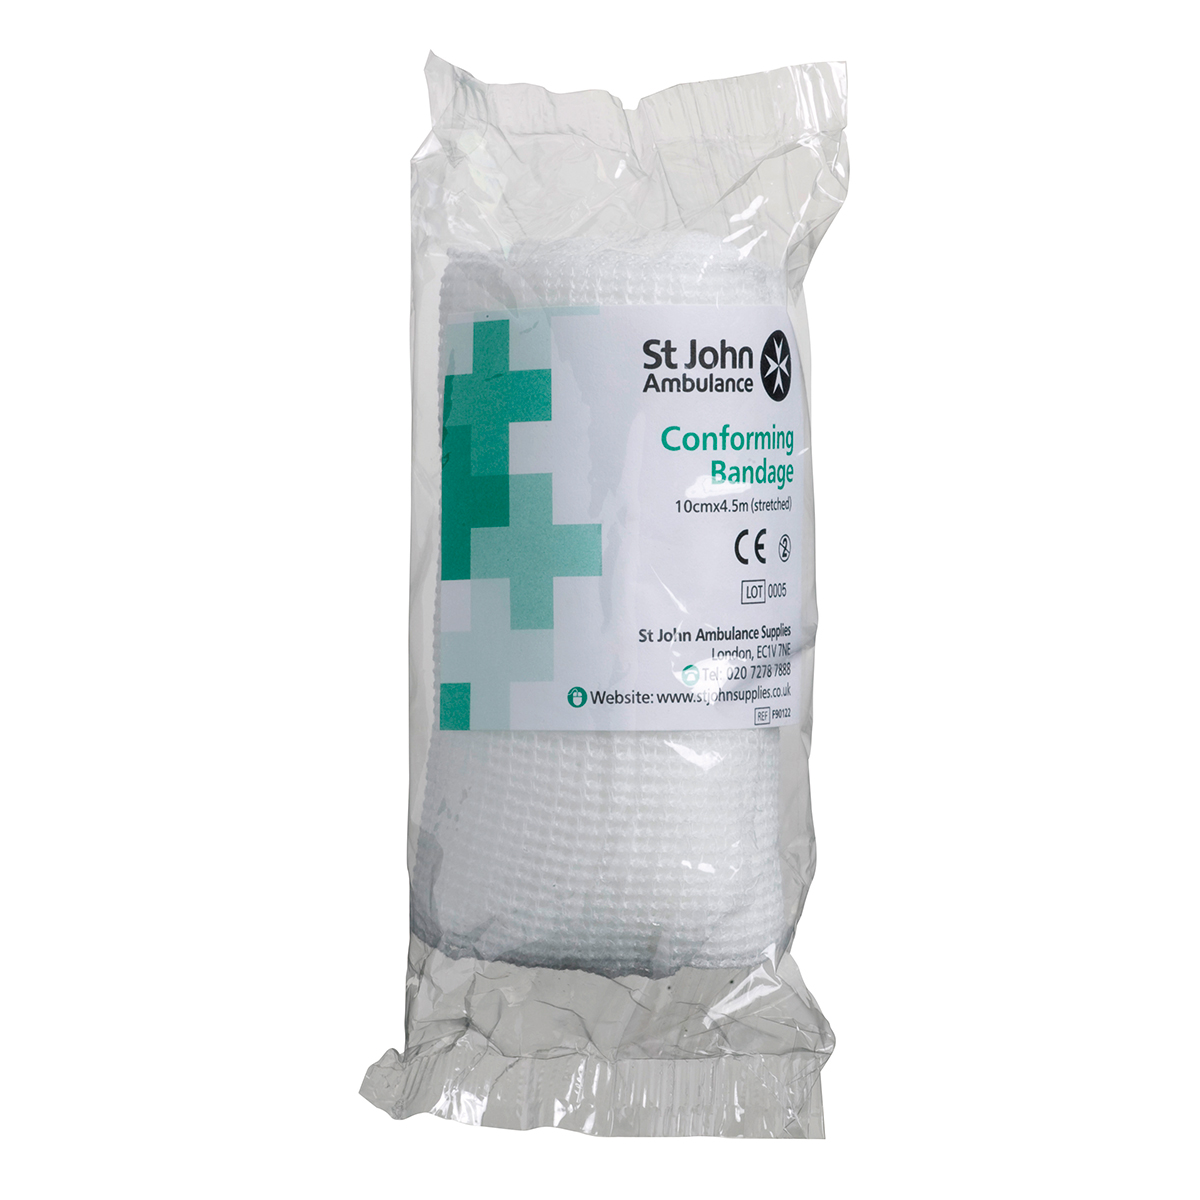 Pack of 5 10cm x 4.5m St John Ambulance Conforming Bandage